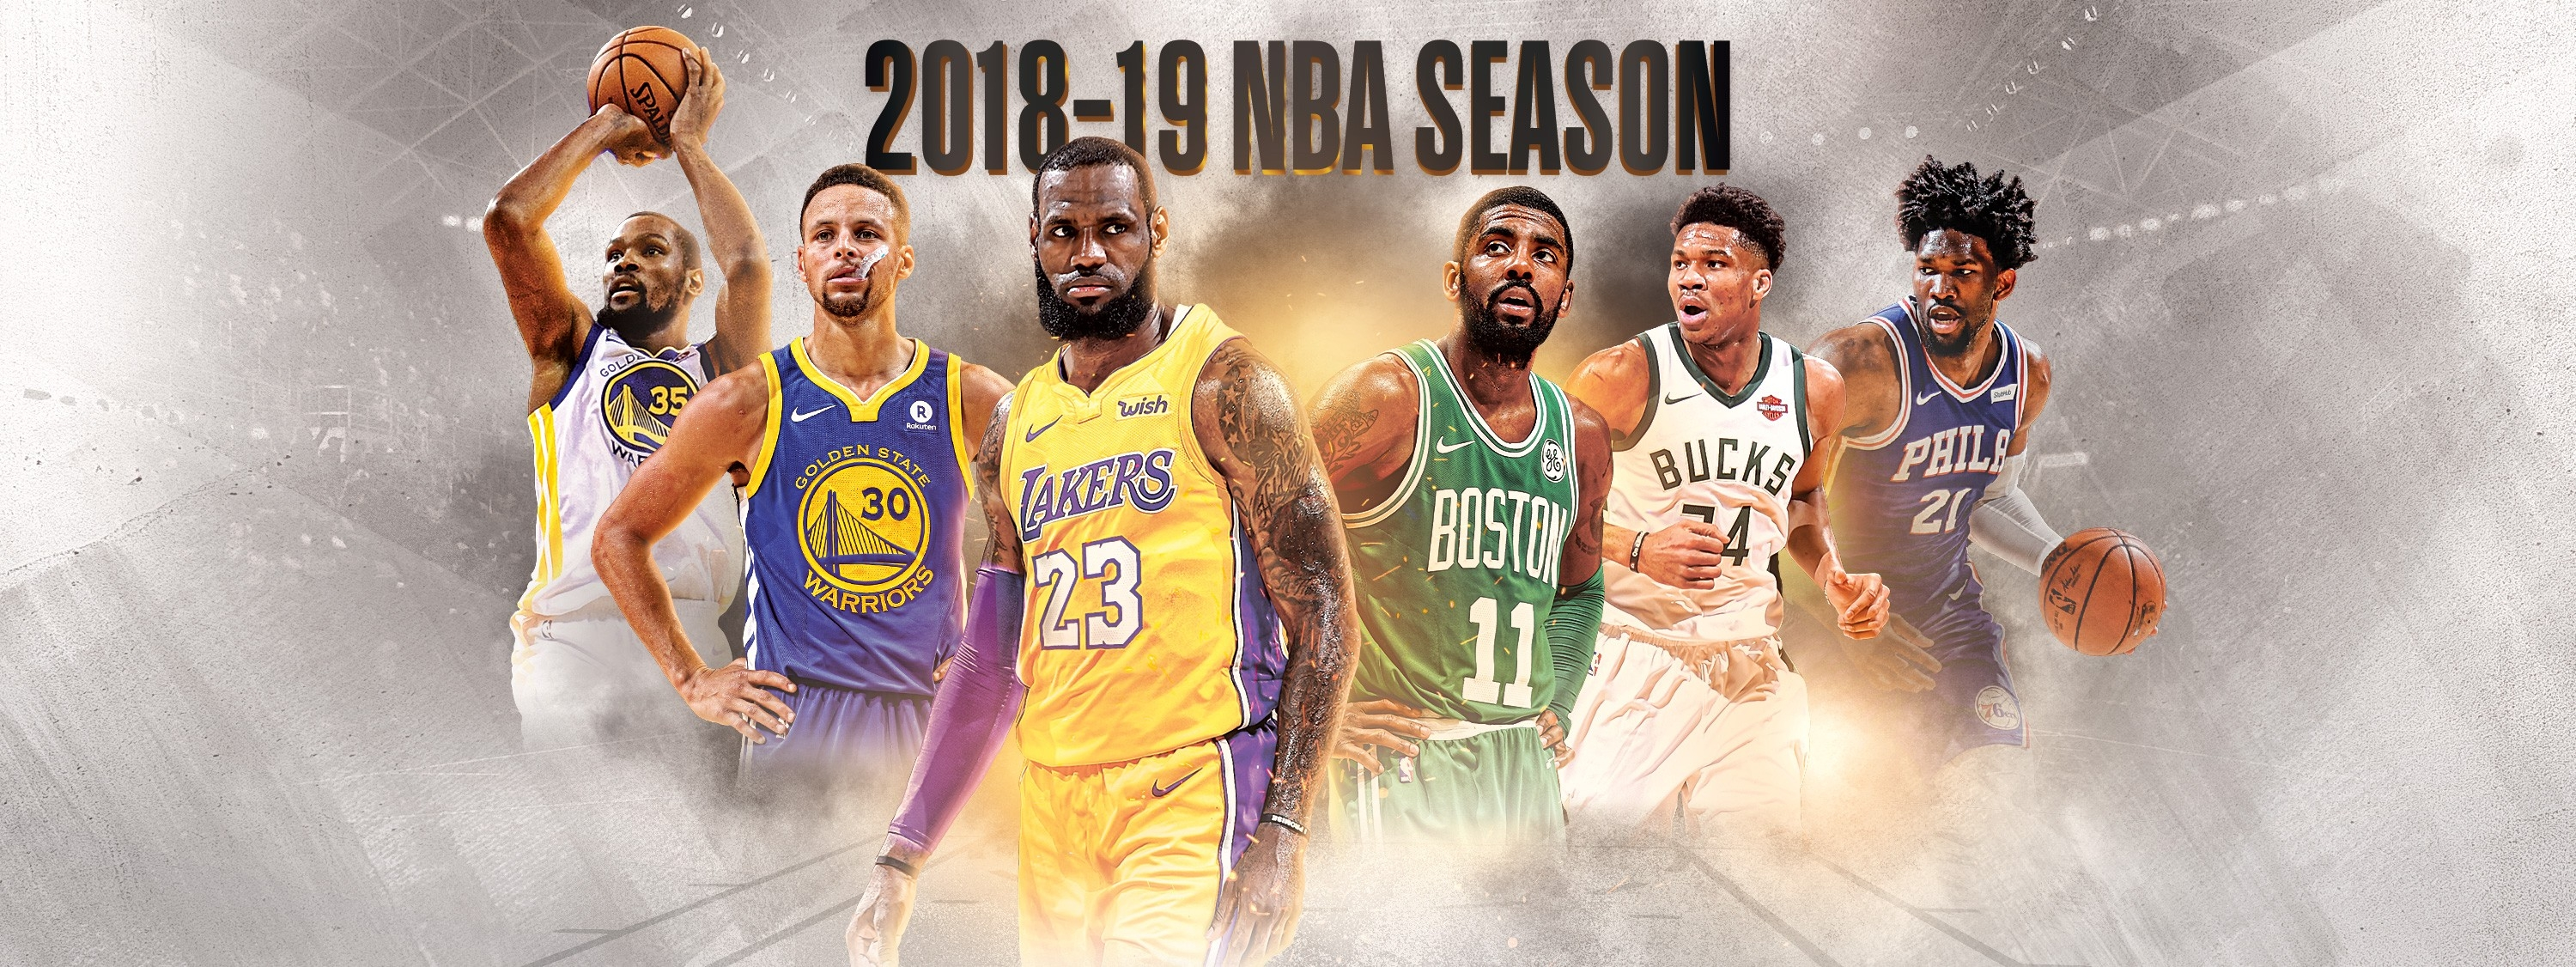 Nba Unveils 2018-19 National Tv Schedule For Opening Week, Christmas throughout Nba Schedule Tonight 47246